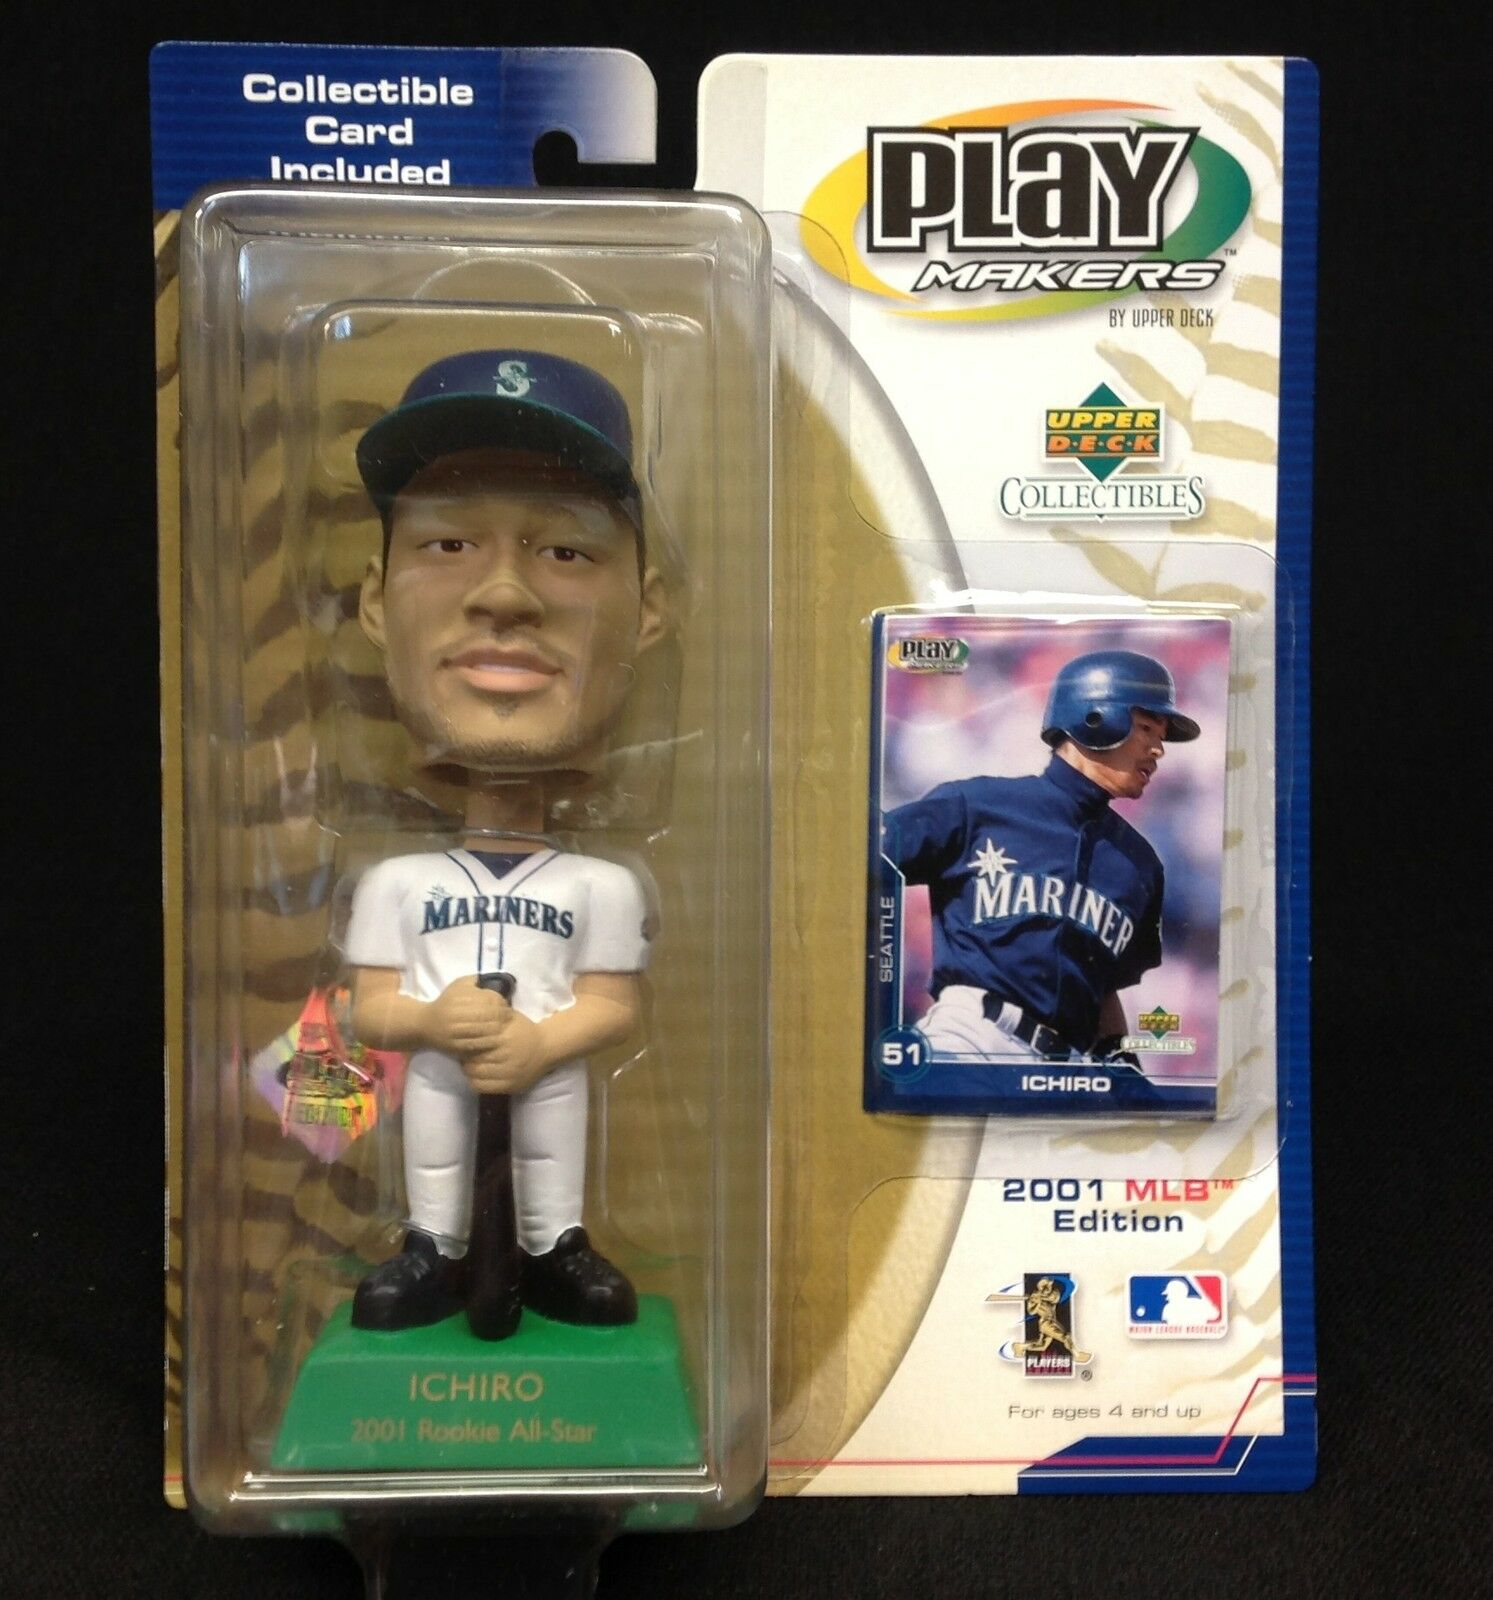 ICHIRO 2001 MLB Edition Upper Deck Play Makers BobbleHead with Collectible Card